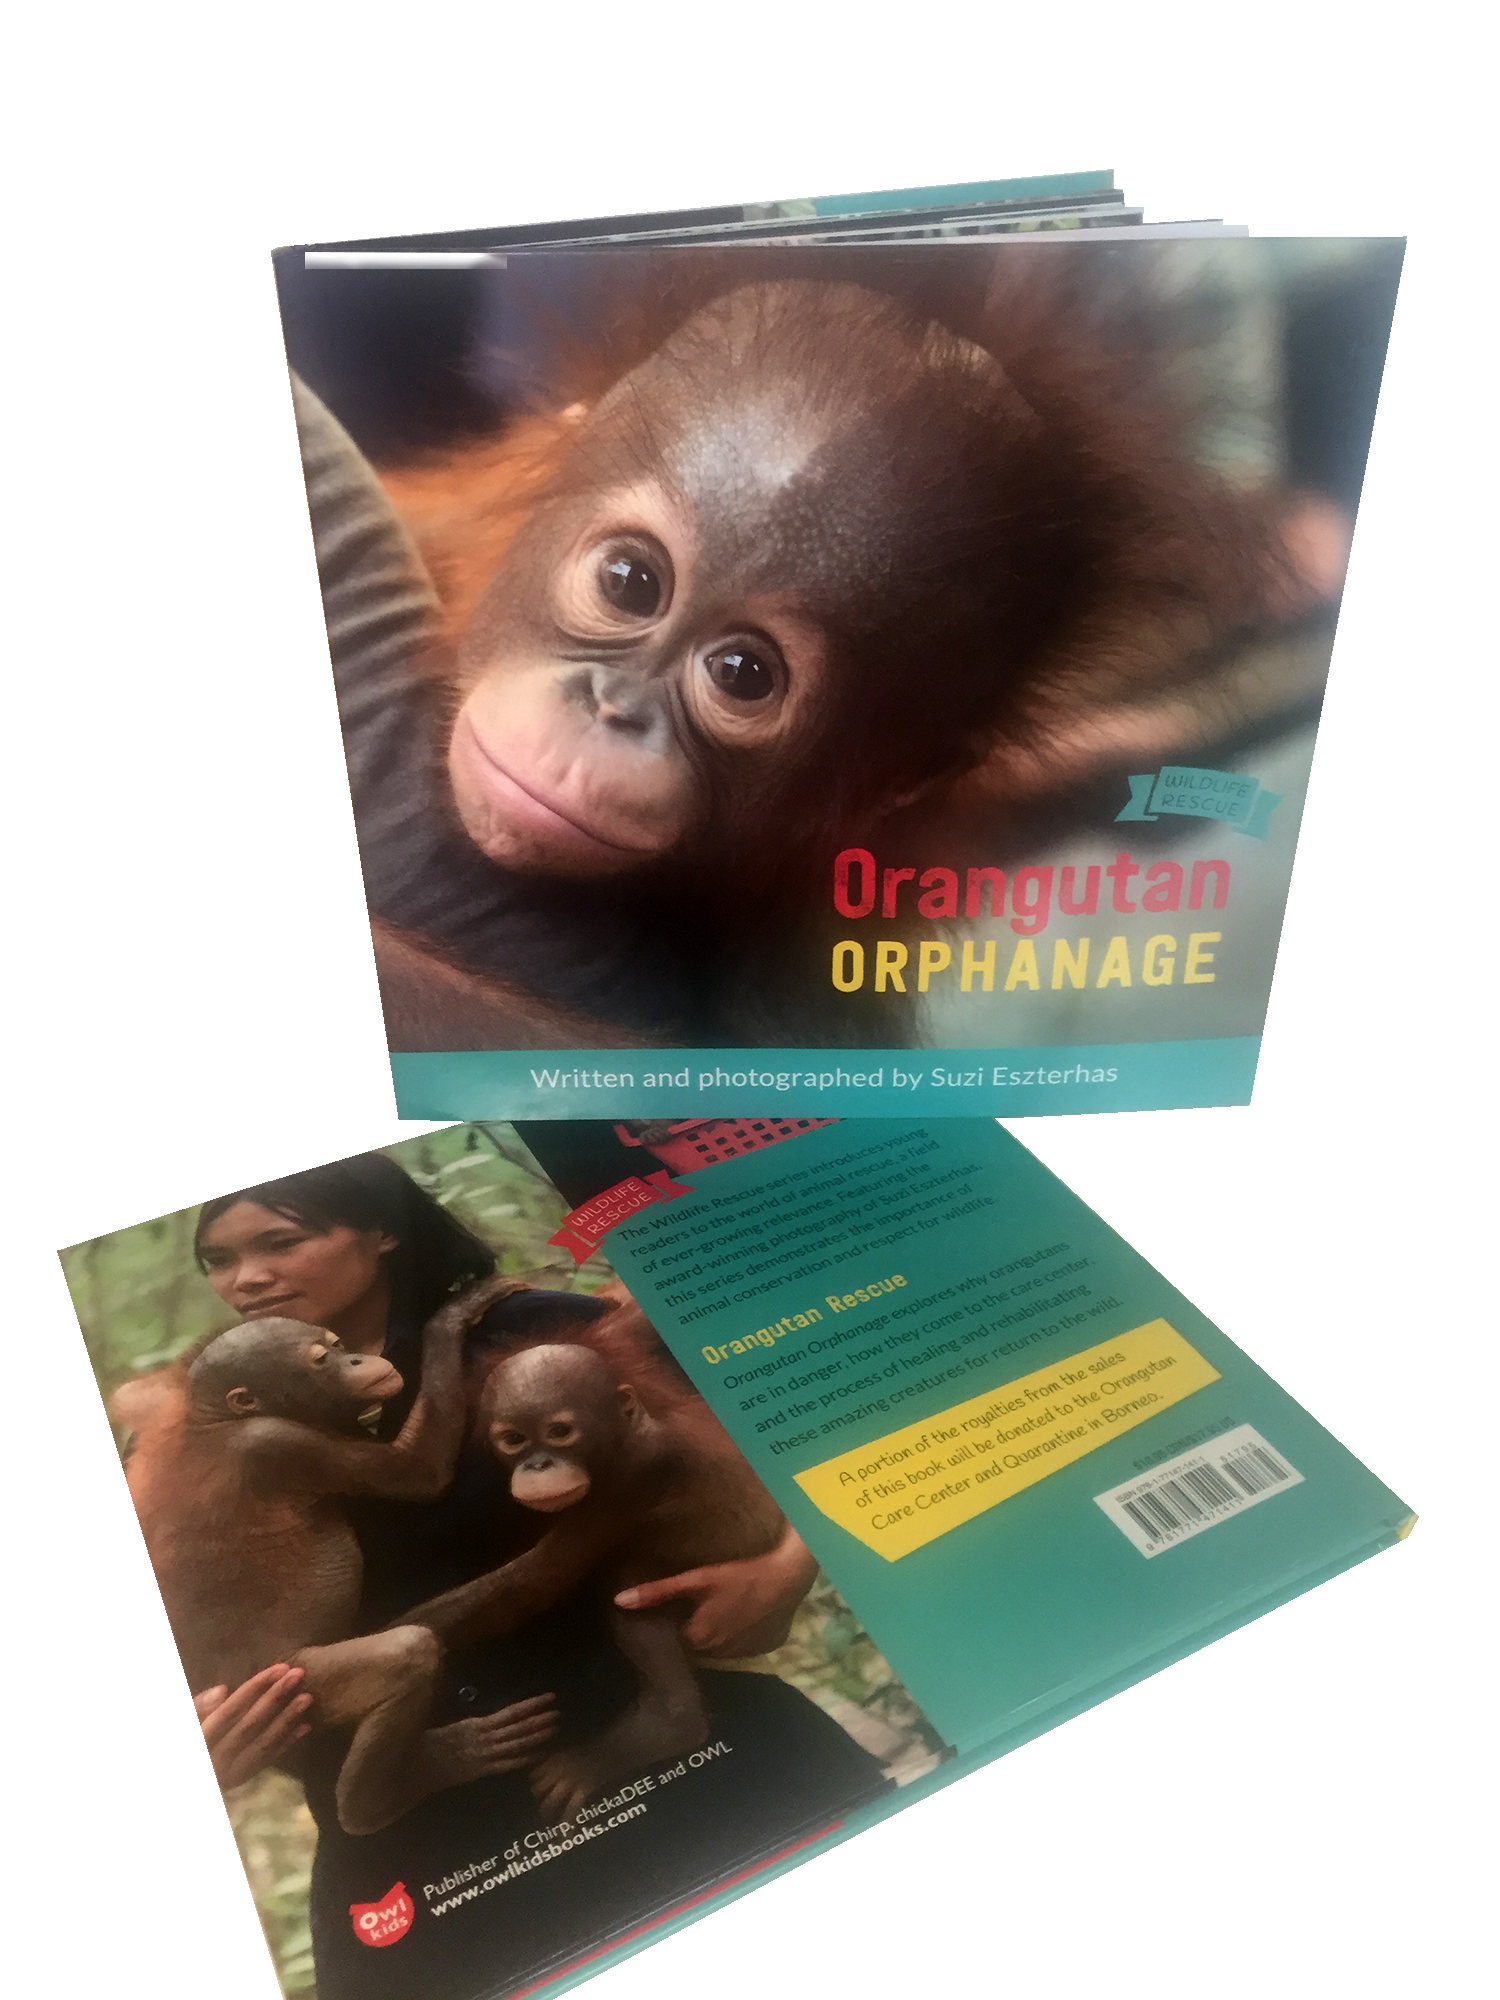 Orangtuan Orphanage Suzi Eszterhas Orangutan Foundation International Children's Book